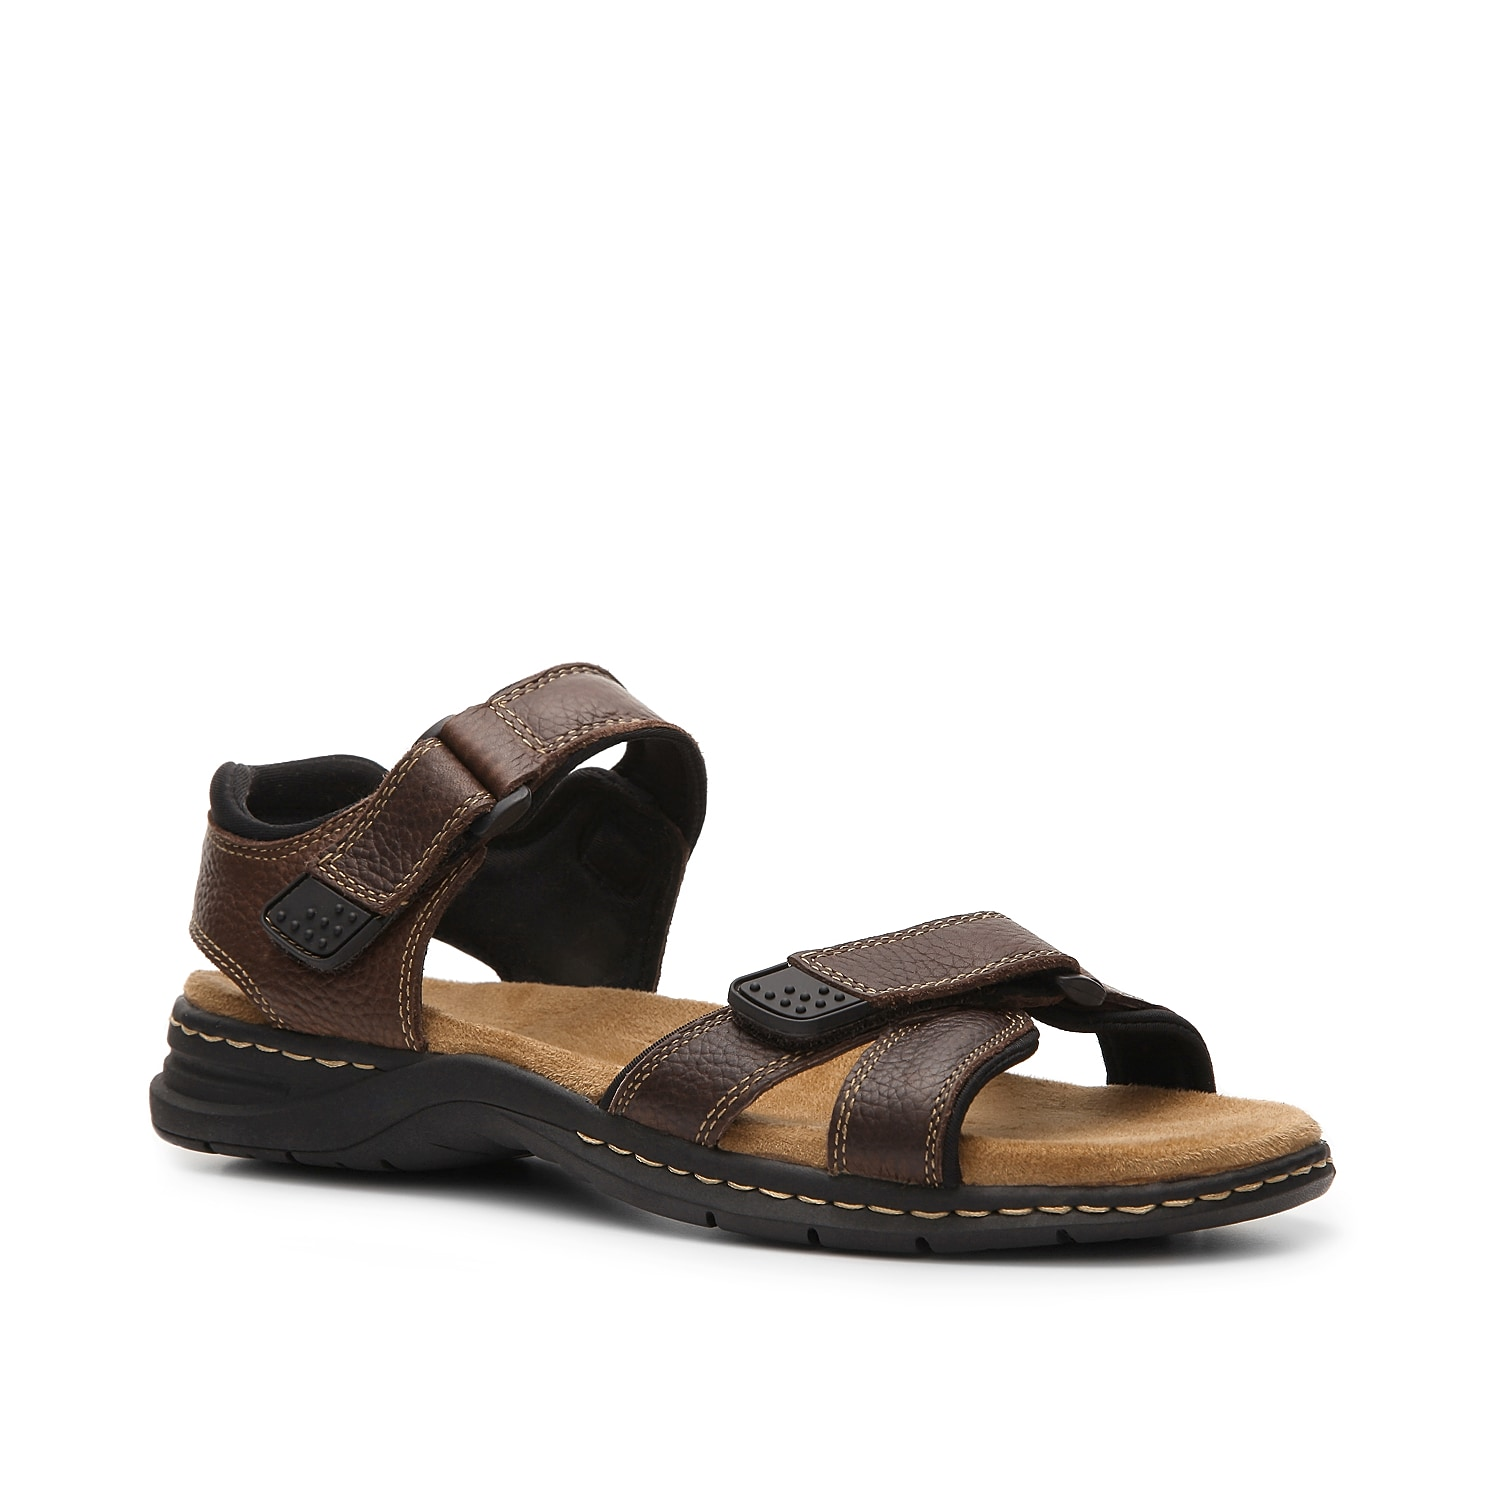 Whether on the trail or on vacation, the Gus sandal from Dr. Scholl\\\'s is a solid choice. Your feet will stay comfortable and cool.